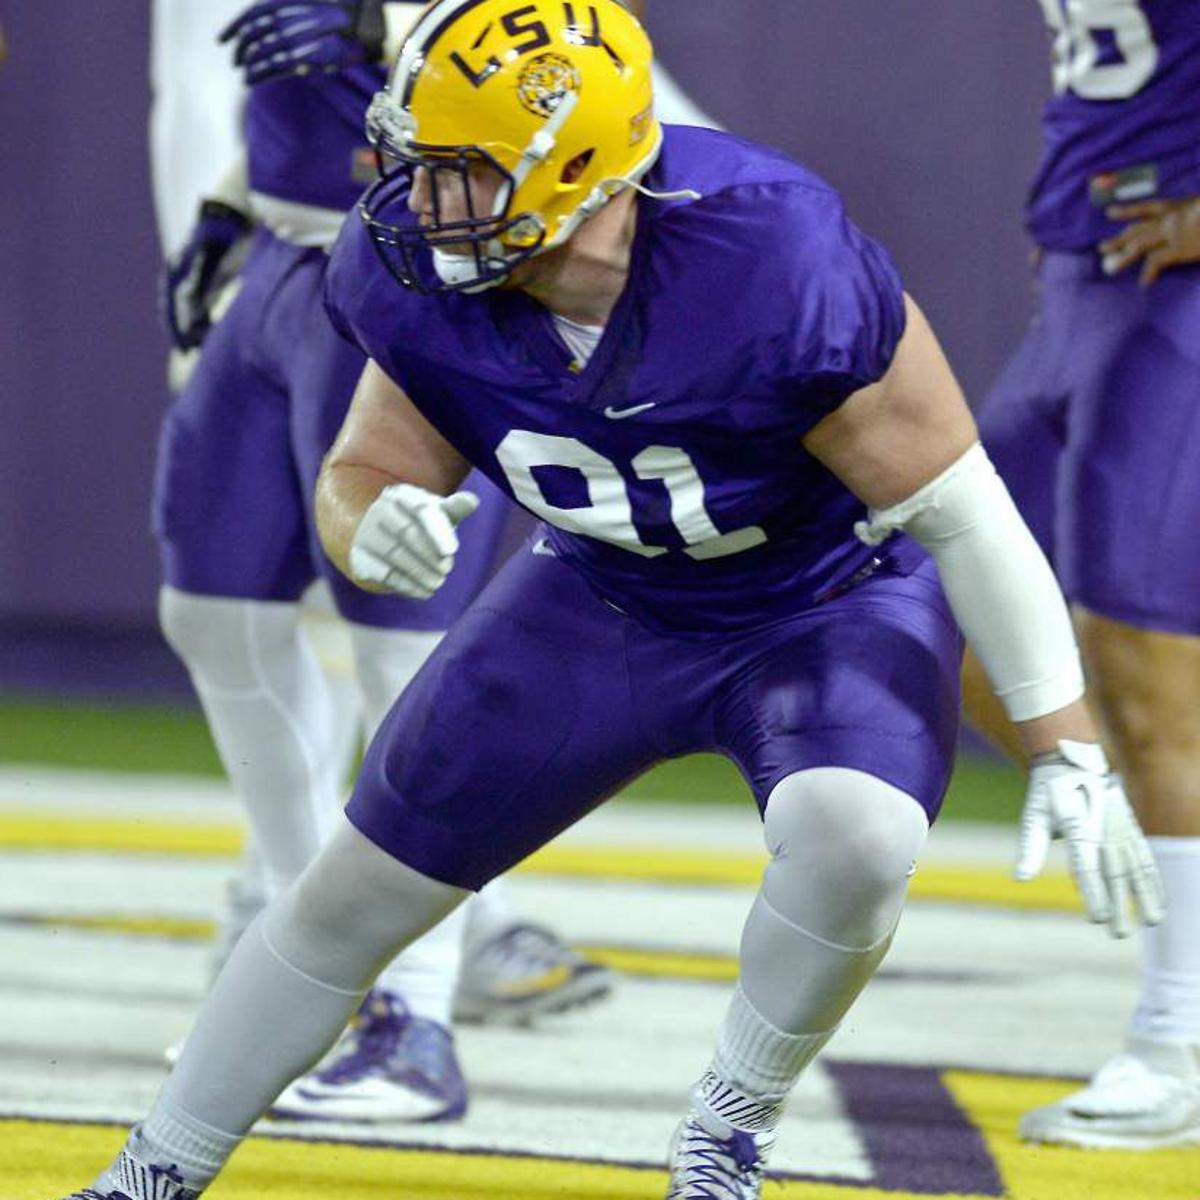 brand new 4e580 3bf0d All what you make of it': LSU swaps Davon Godchaux ...